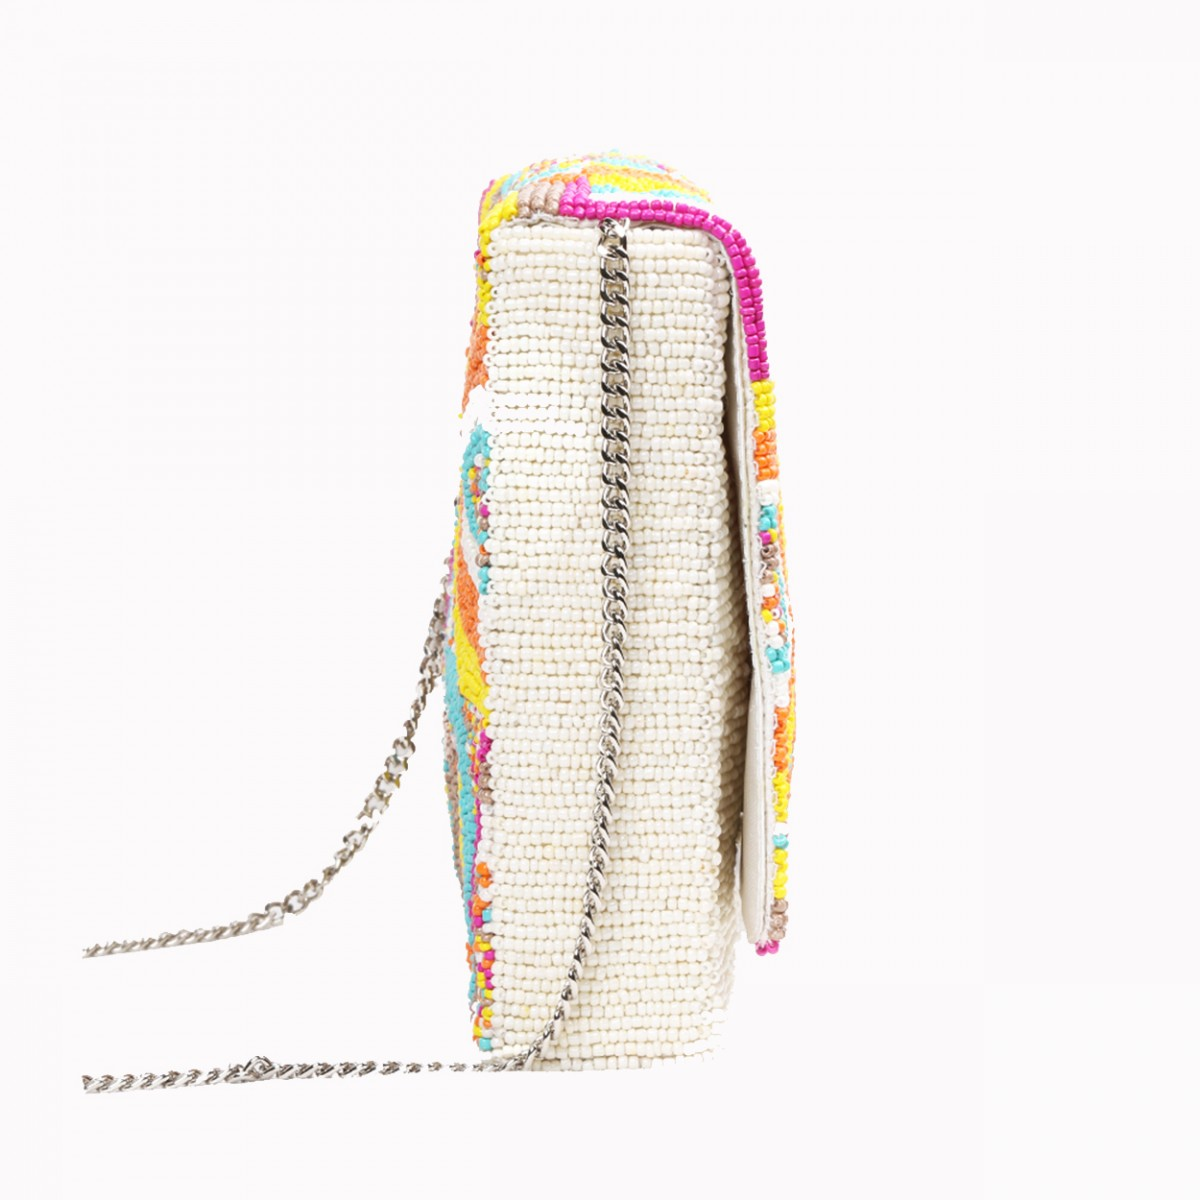 Beaded Evening  Box Clutch Bag - Multi Color